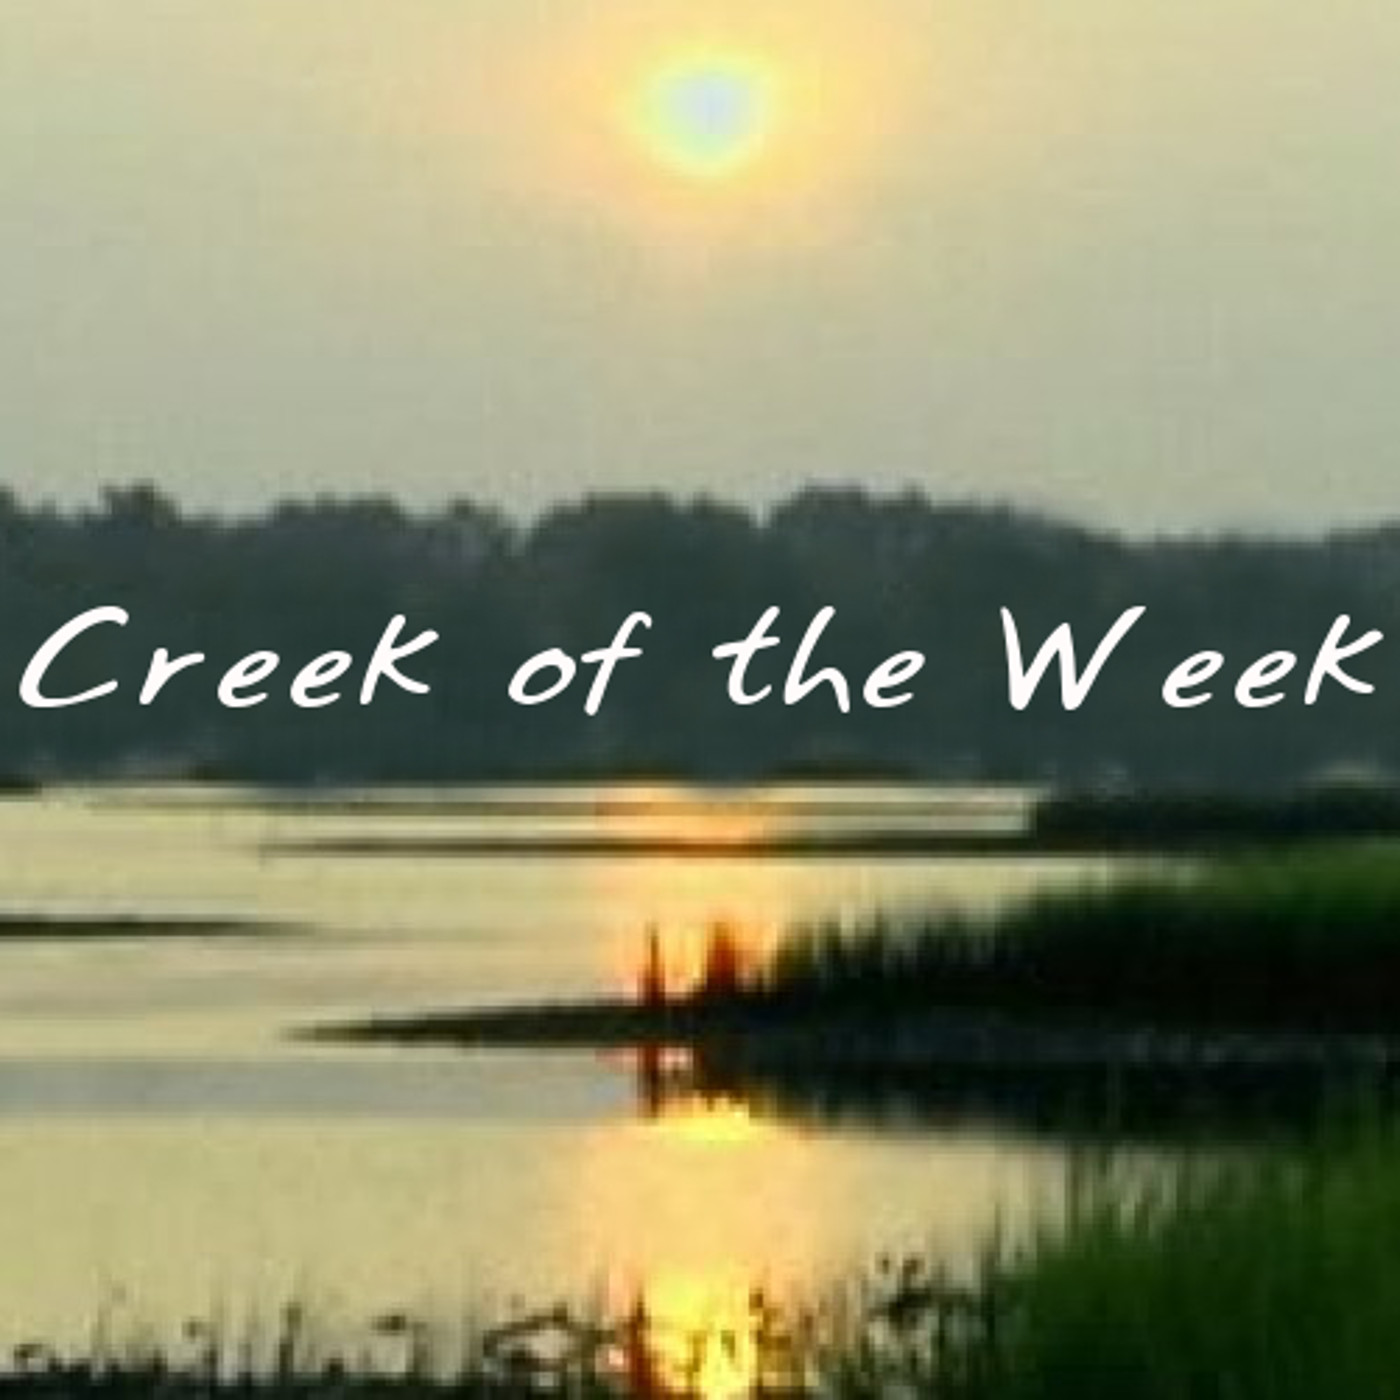 Creek of the Week: A Dawson's Creek Podcast